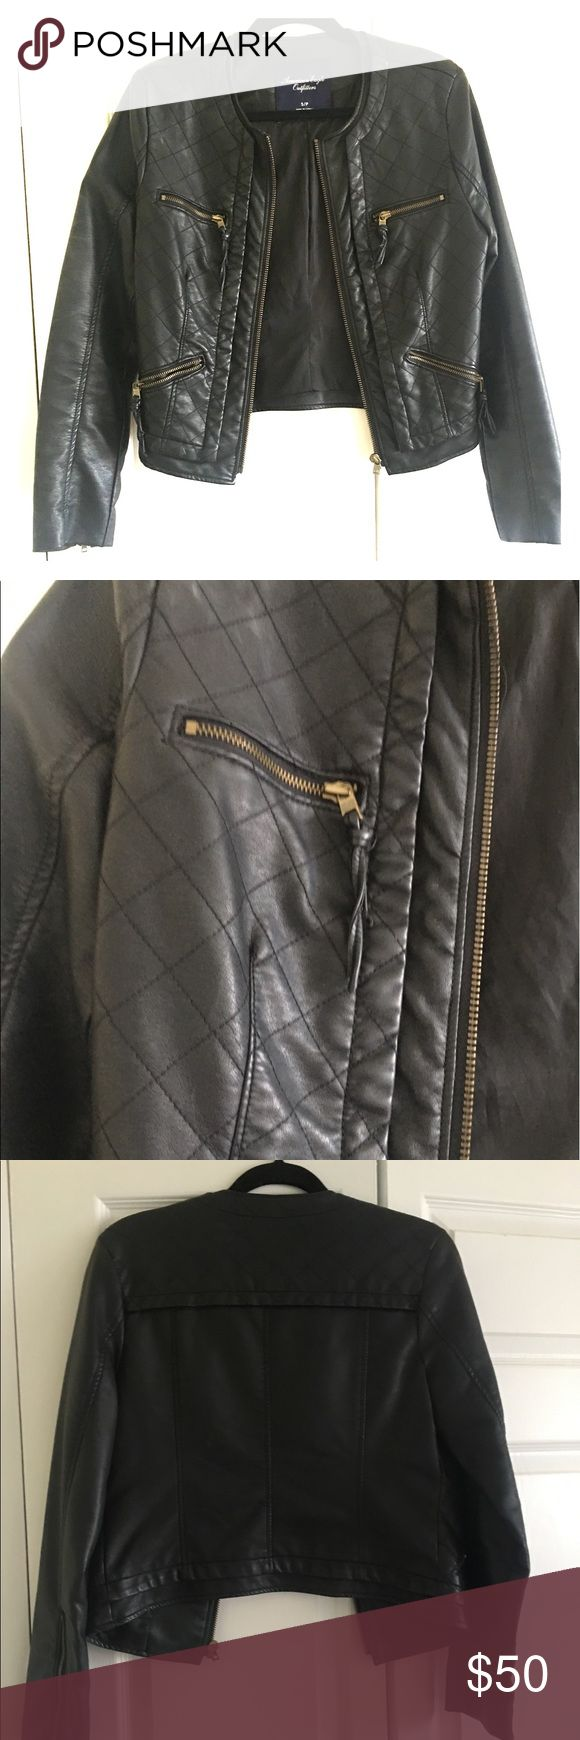 Black leather Jacket with Brass details This jacket is from American Eagle. Only wore is a few times. Very pretty on. No cuff collar. Fits true to size. American Eagle Outfitters Jackets & Coats